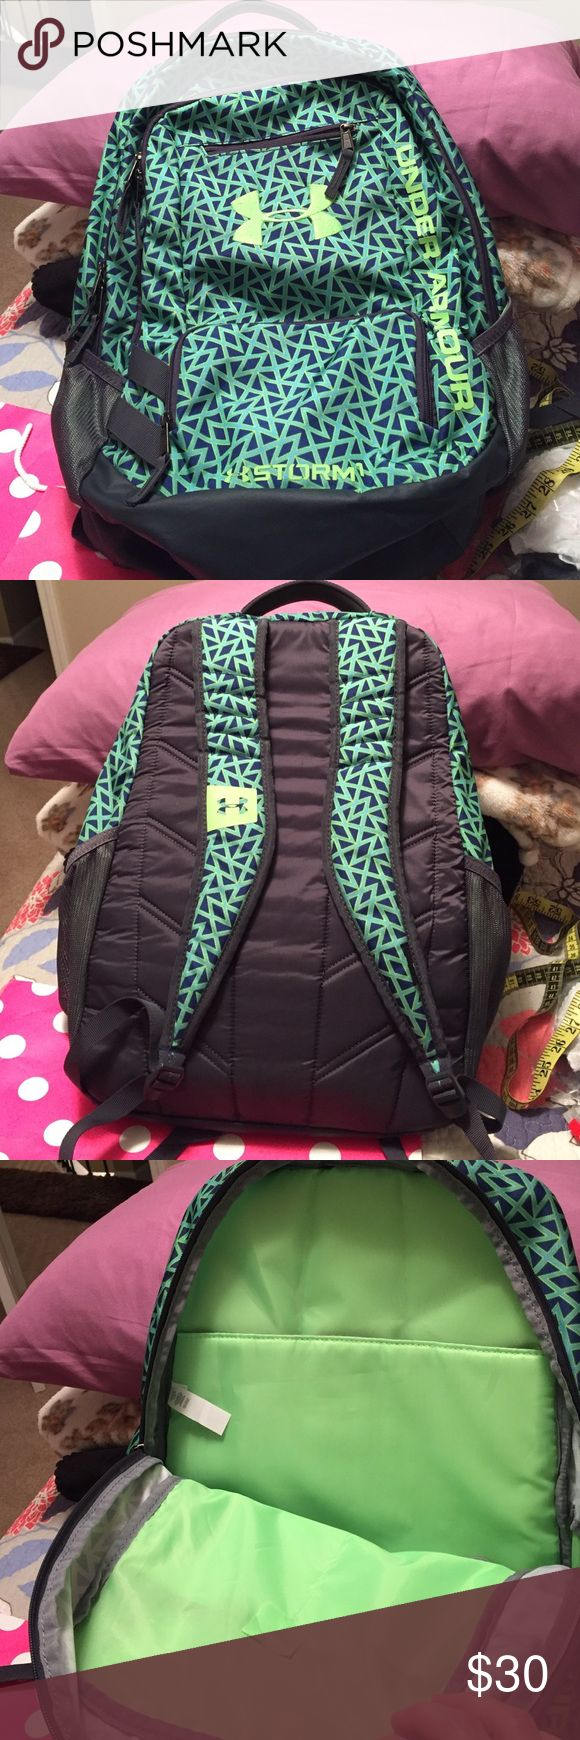 Like new Under Armour backpack green Like new used only a few times Under Armour Backpack with area for laptop cushion , 3 zip pockets for personal stuff on the outside.  Made of Polyester to repel rain, also 2 water bottle areas.  18 inches by 14 inches by 8 inches. Under Armour Bags Backpacks